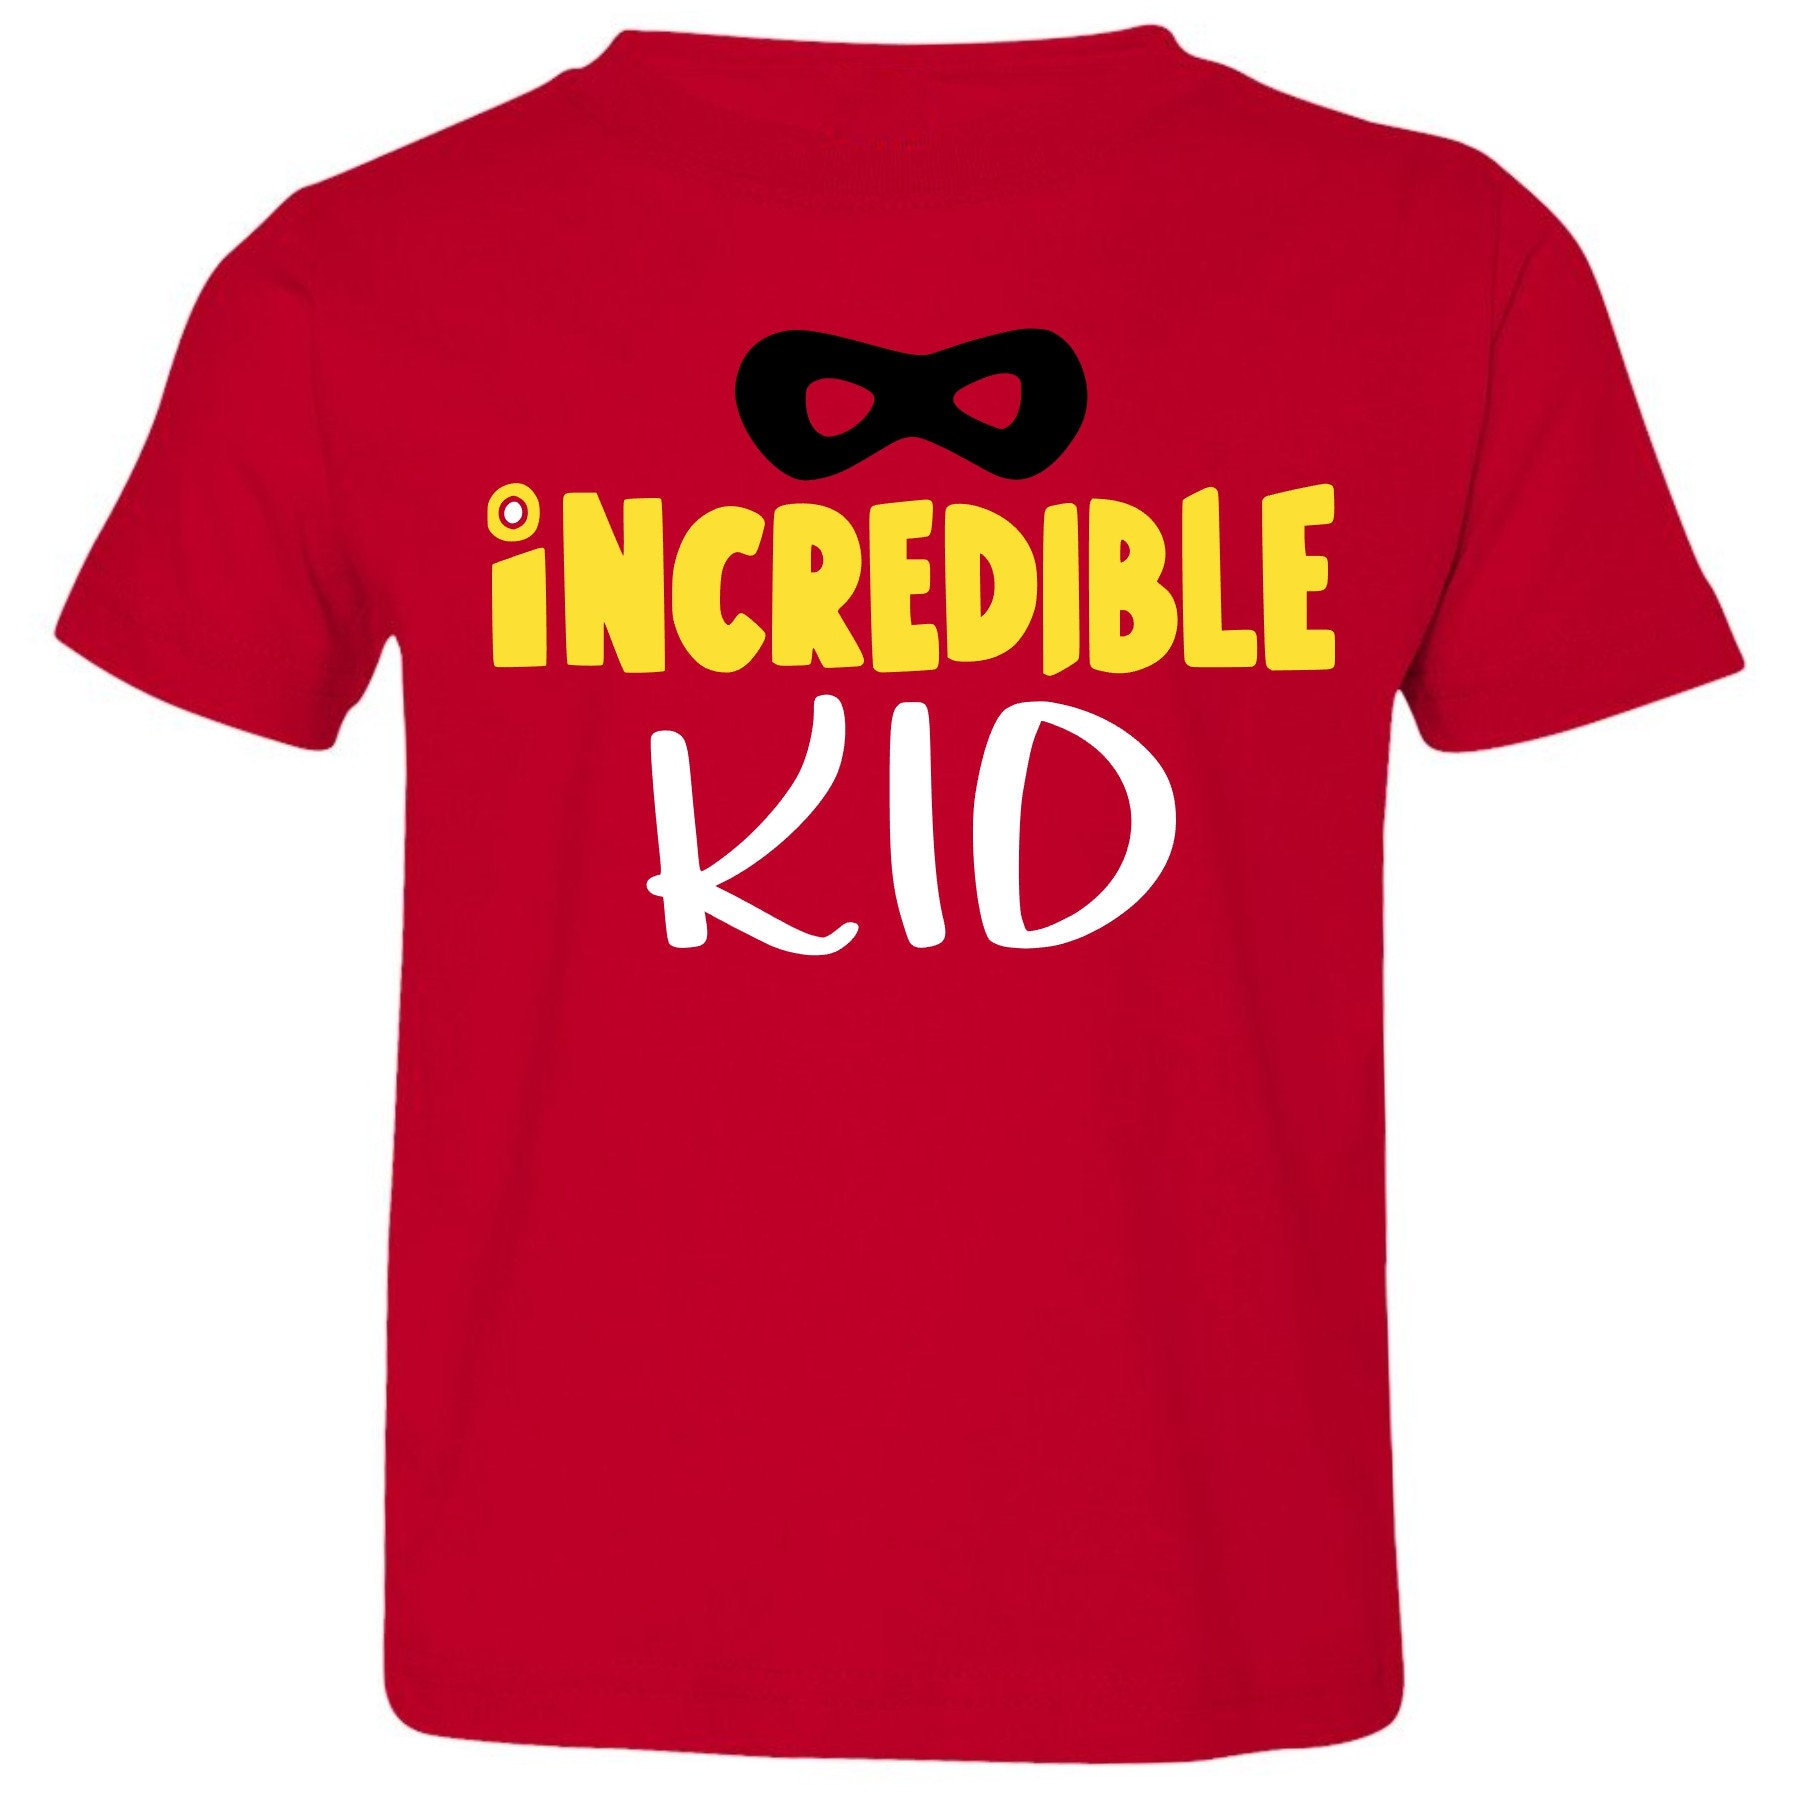 8f82bdb3d Family Incredible Kid Tee, Tank, Shirt - Many Styles to Choose From - Sizes  for infants to adults